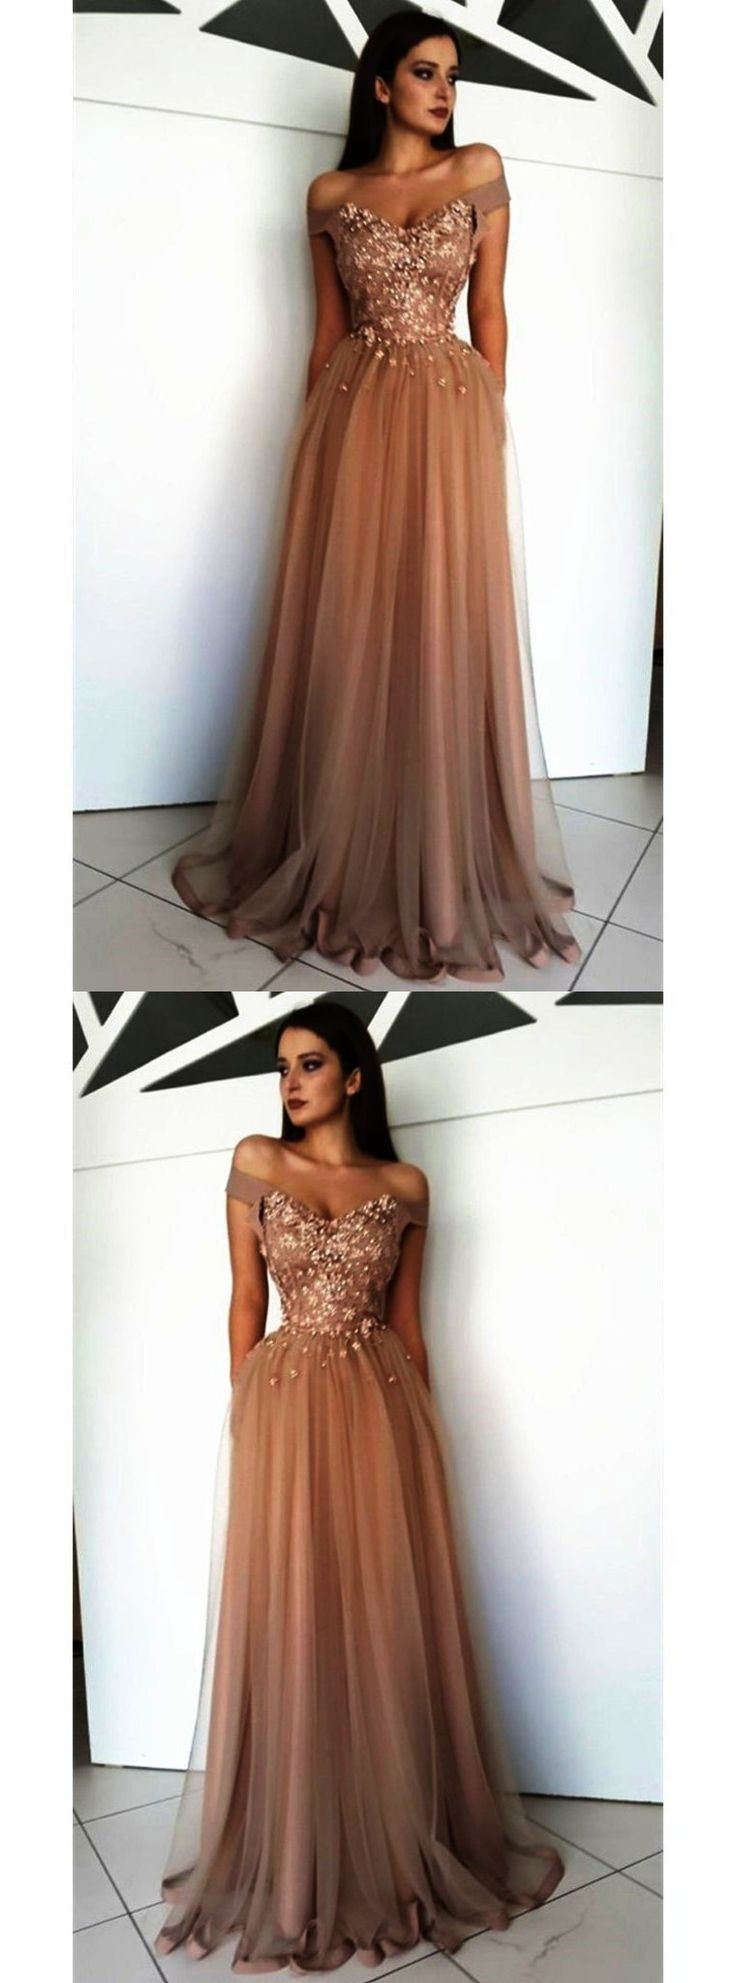 Prom Dresses Short And Tight after Prom Dresses 2019 Sherri Hill